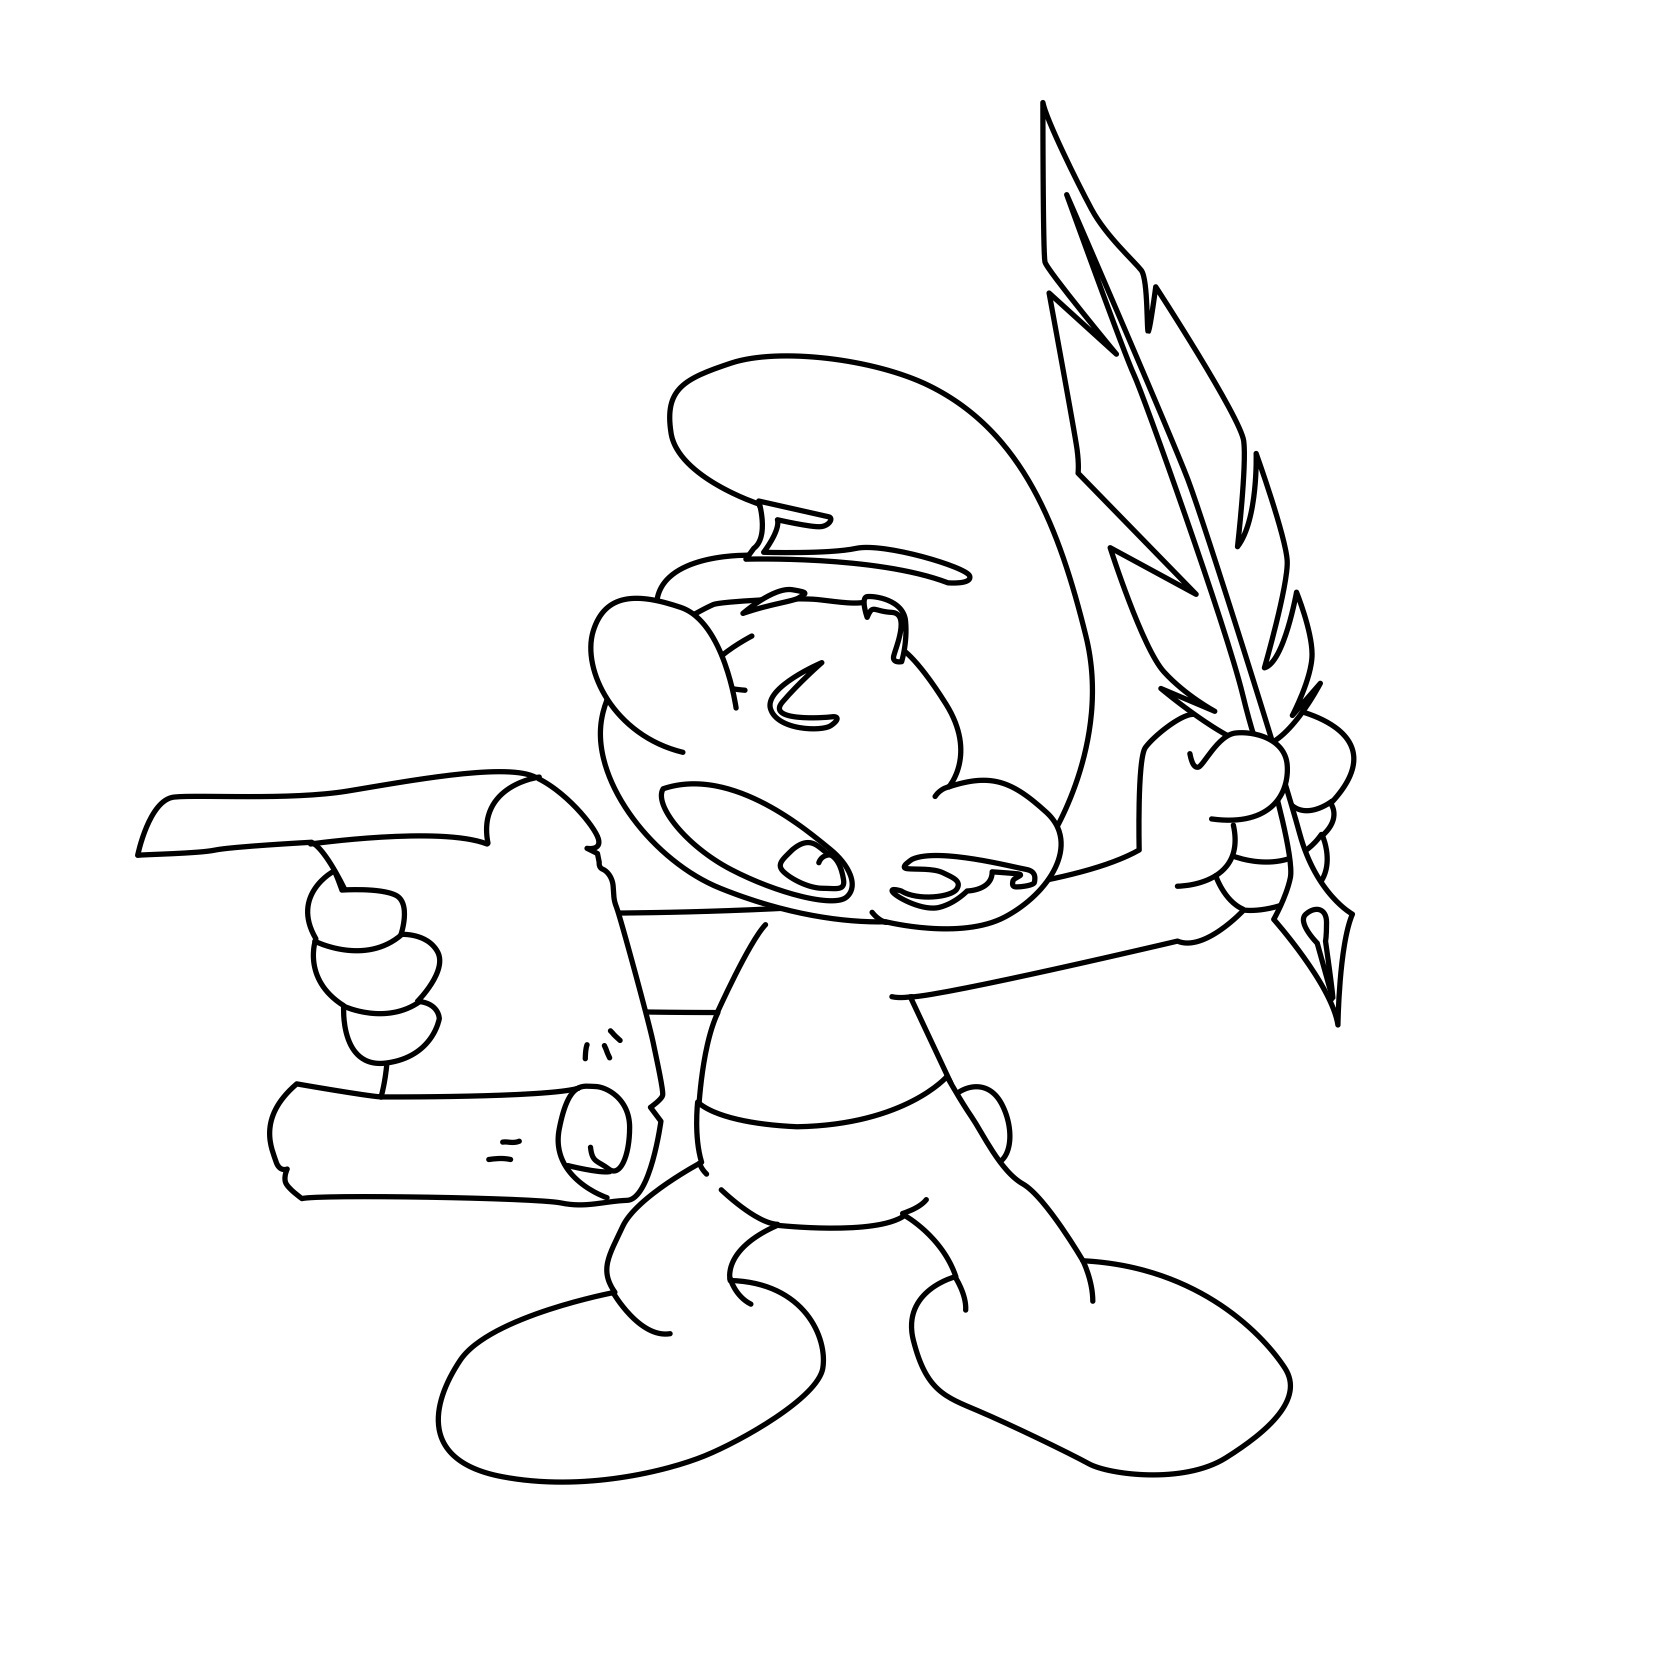 printable smurf coloring pages - photo#23